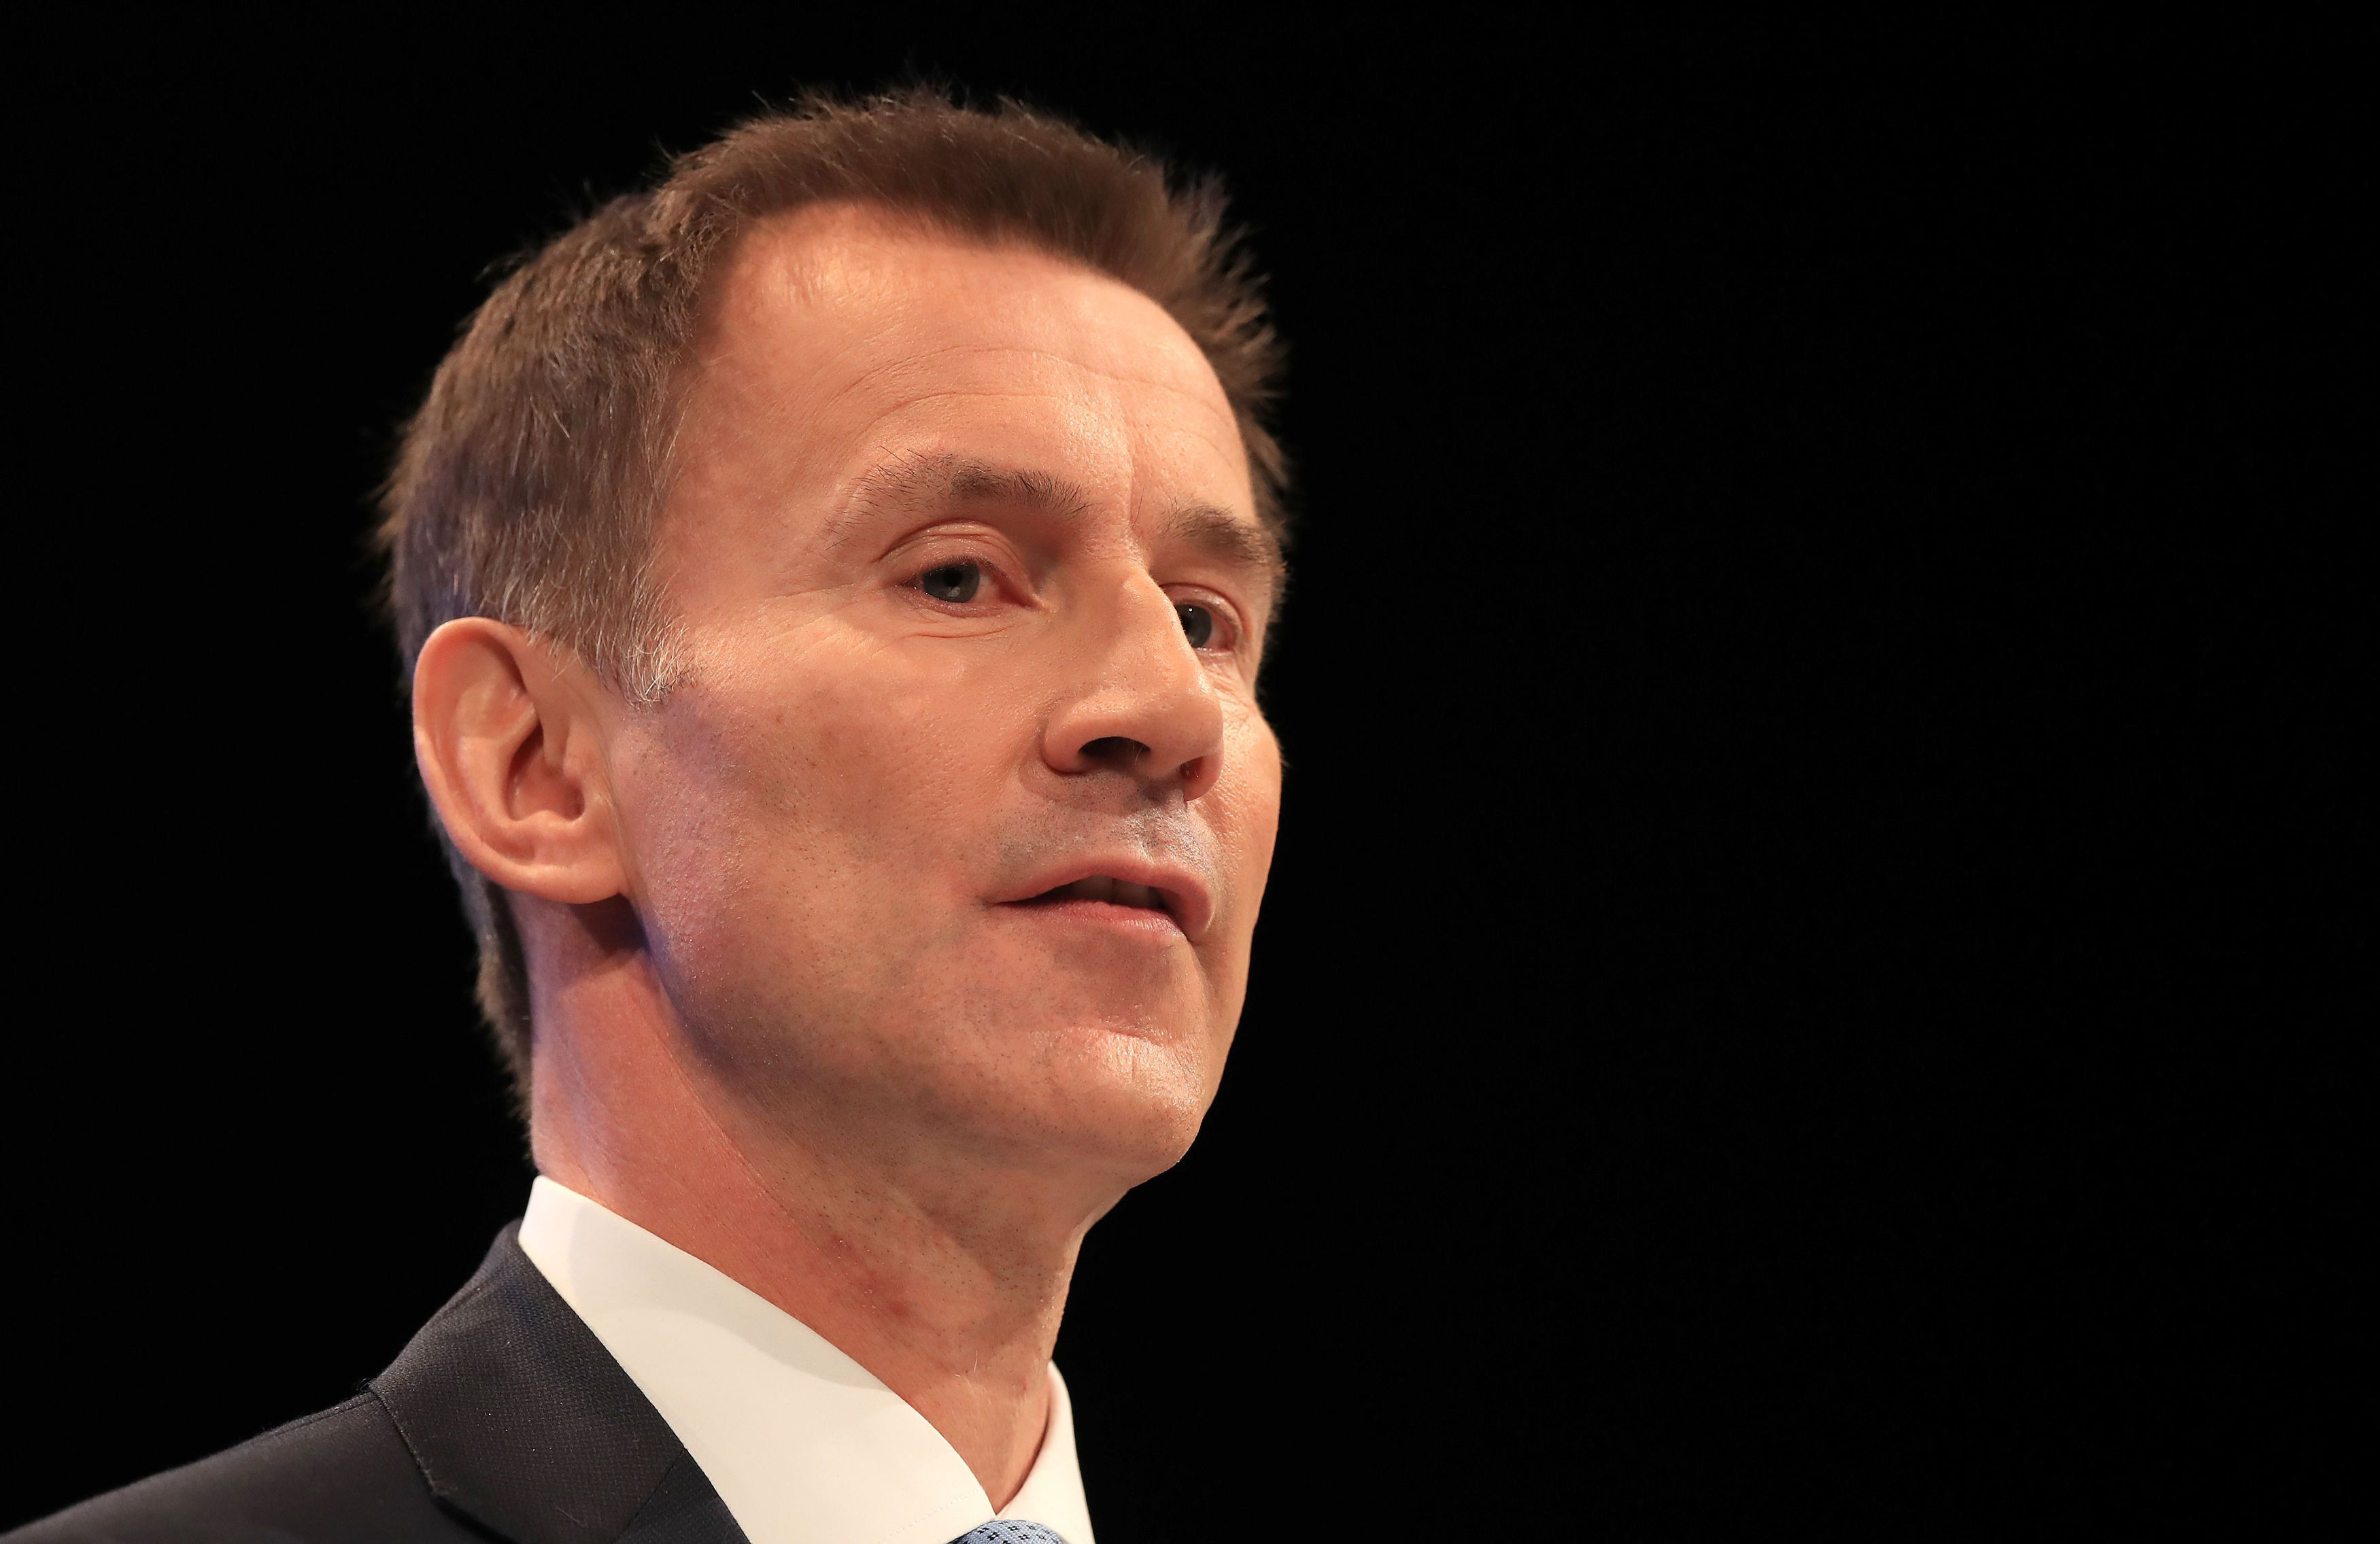 Jeremy Hunt Tears Into Tech Giants Over Failure To Protect Children's Mental